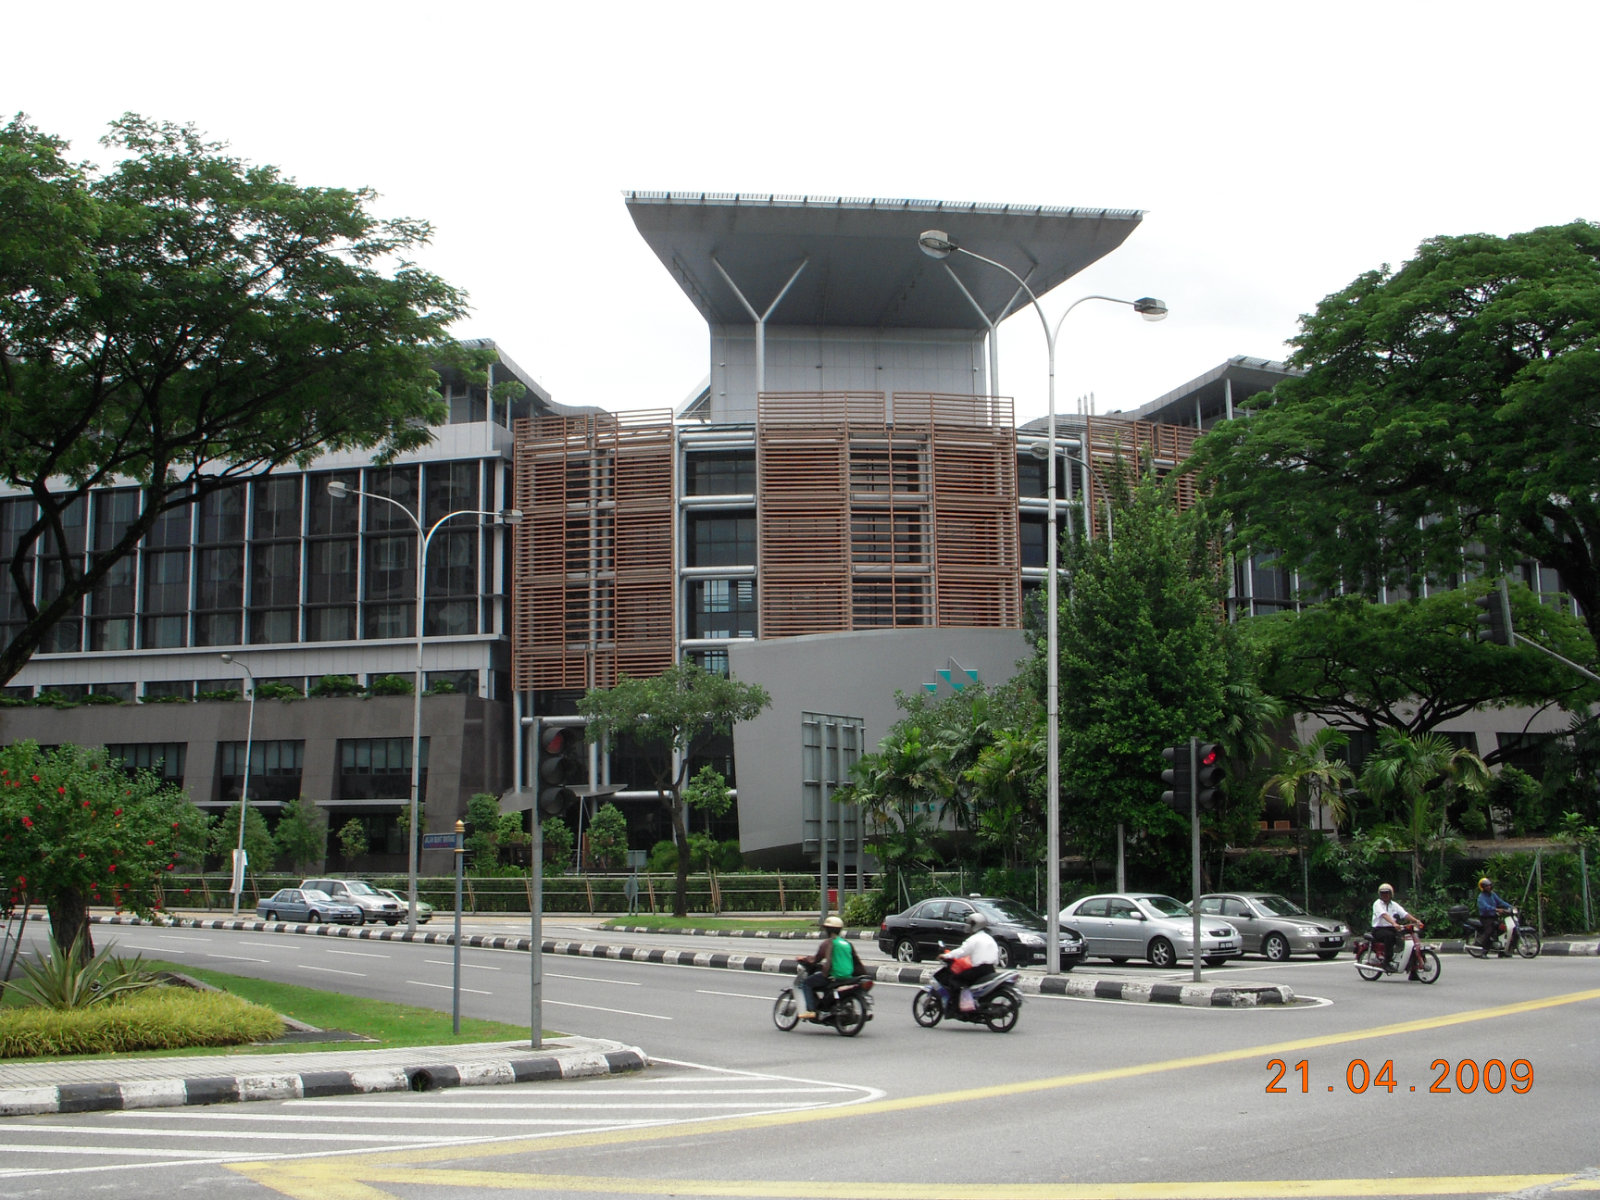 General View to Prince Crown Hospital at Jalan Tun Razak, Ku